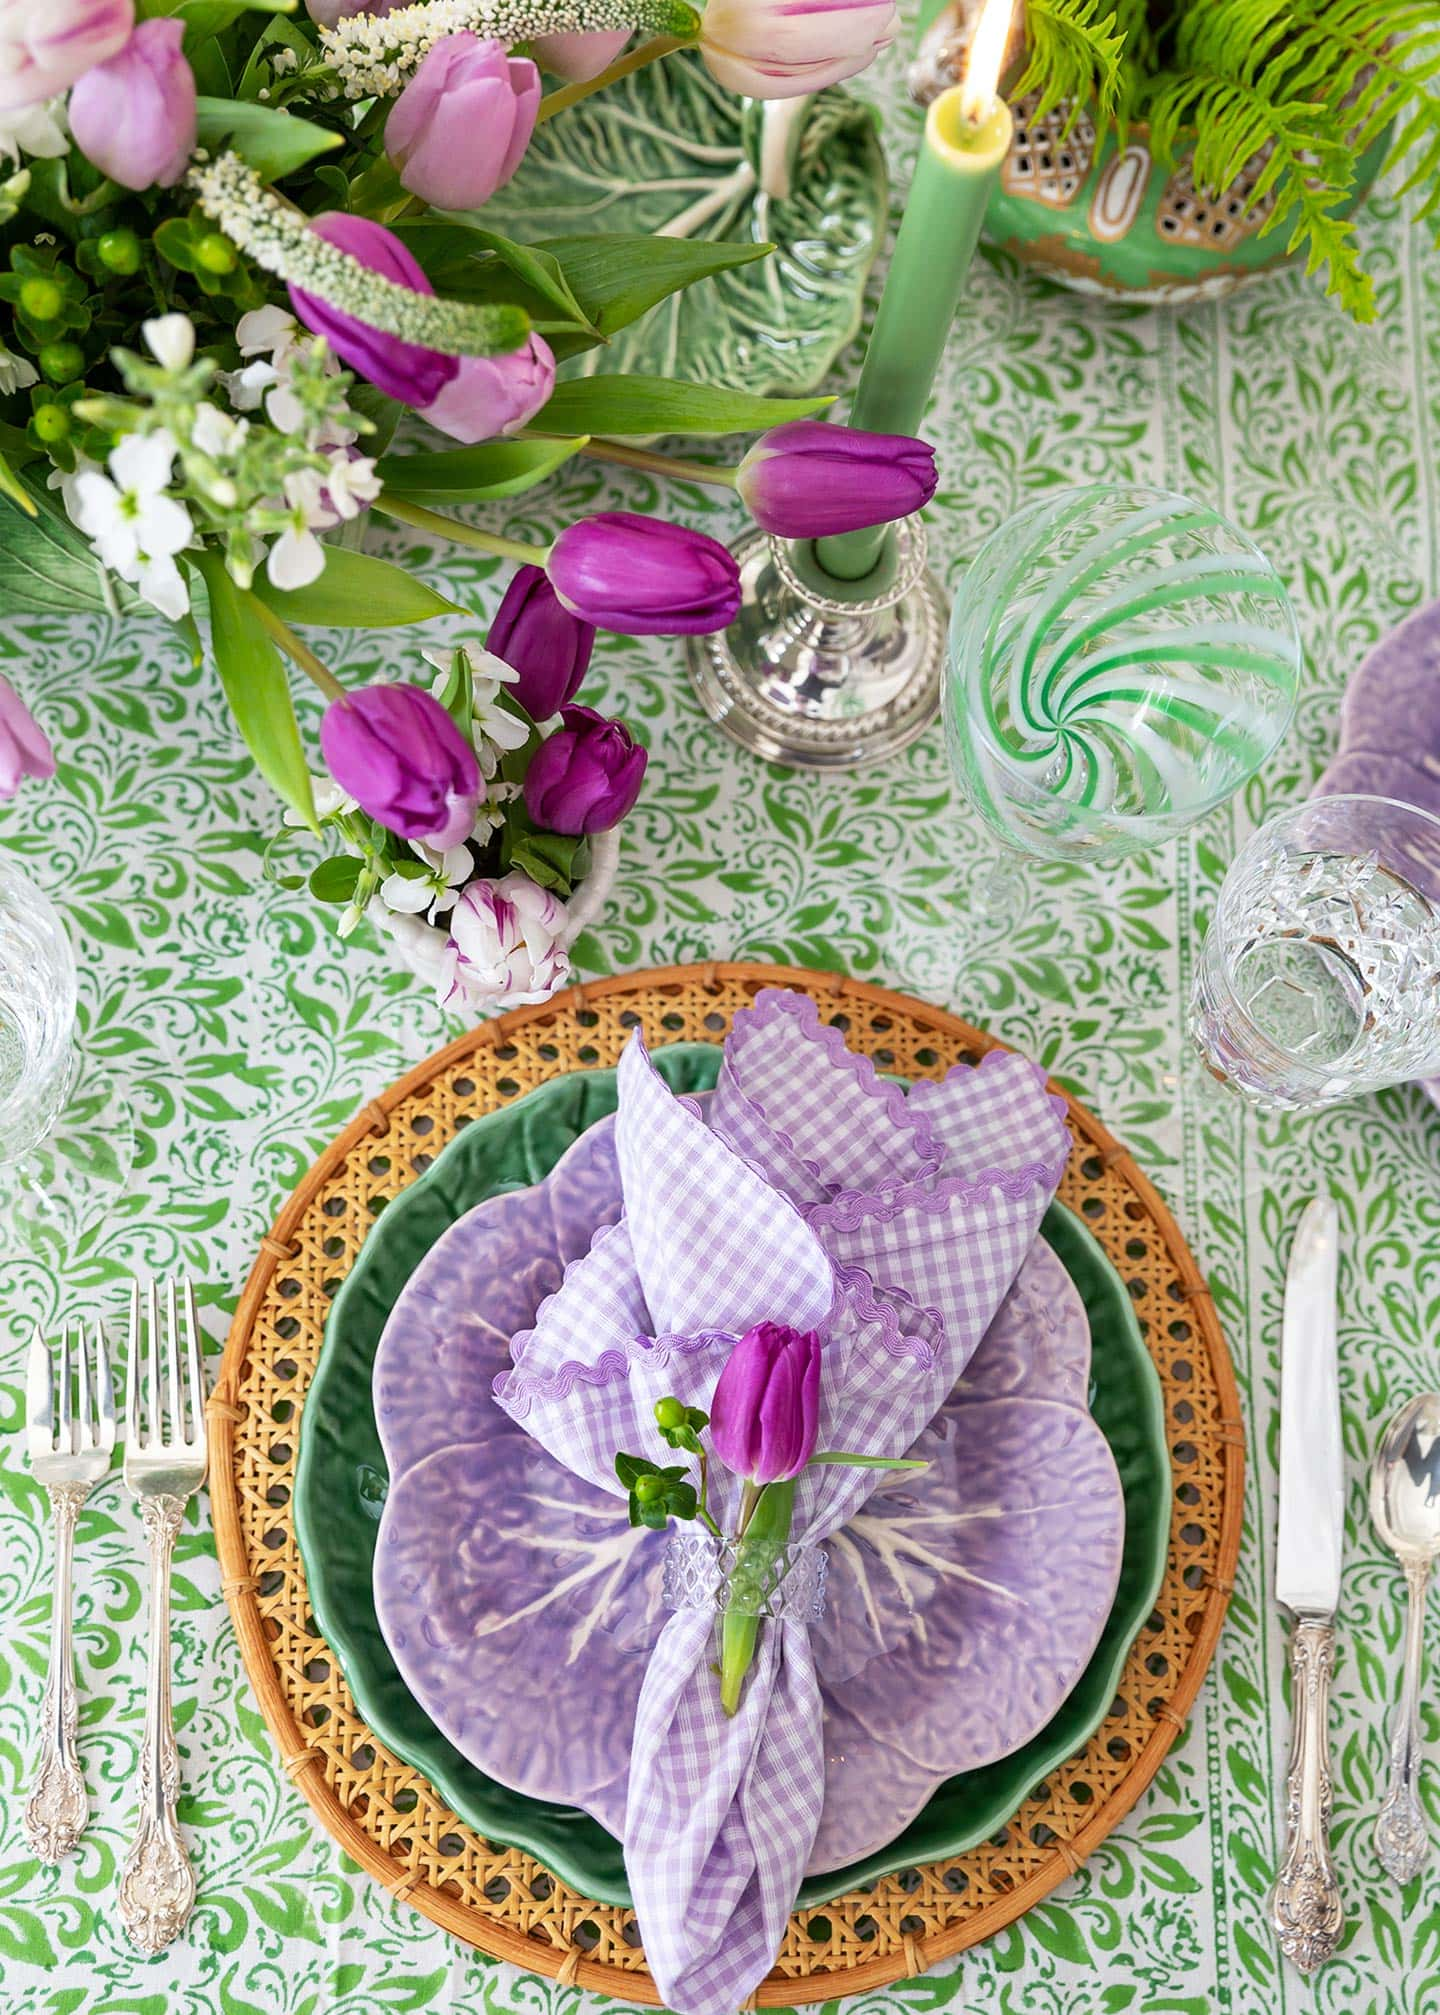 green cabbage leaf and purple flower place setting.